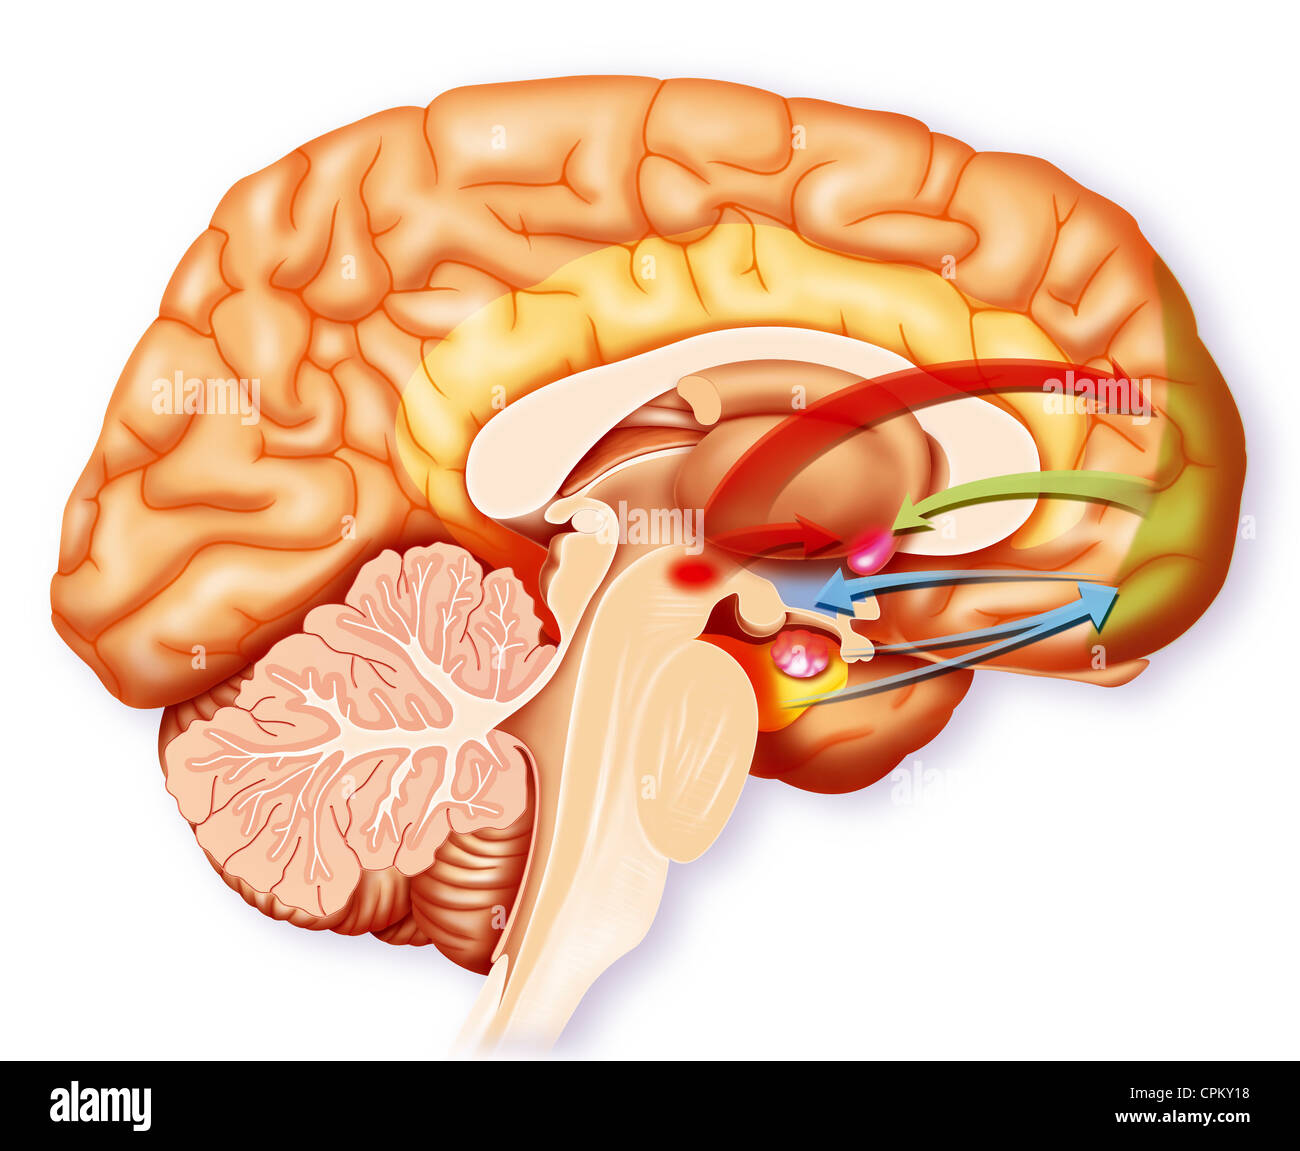 Ventral Striatum Stock Photos & Ventral Striatum Stock Images - Alamy